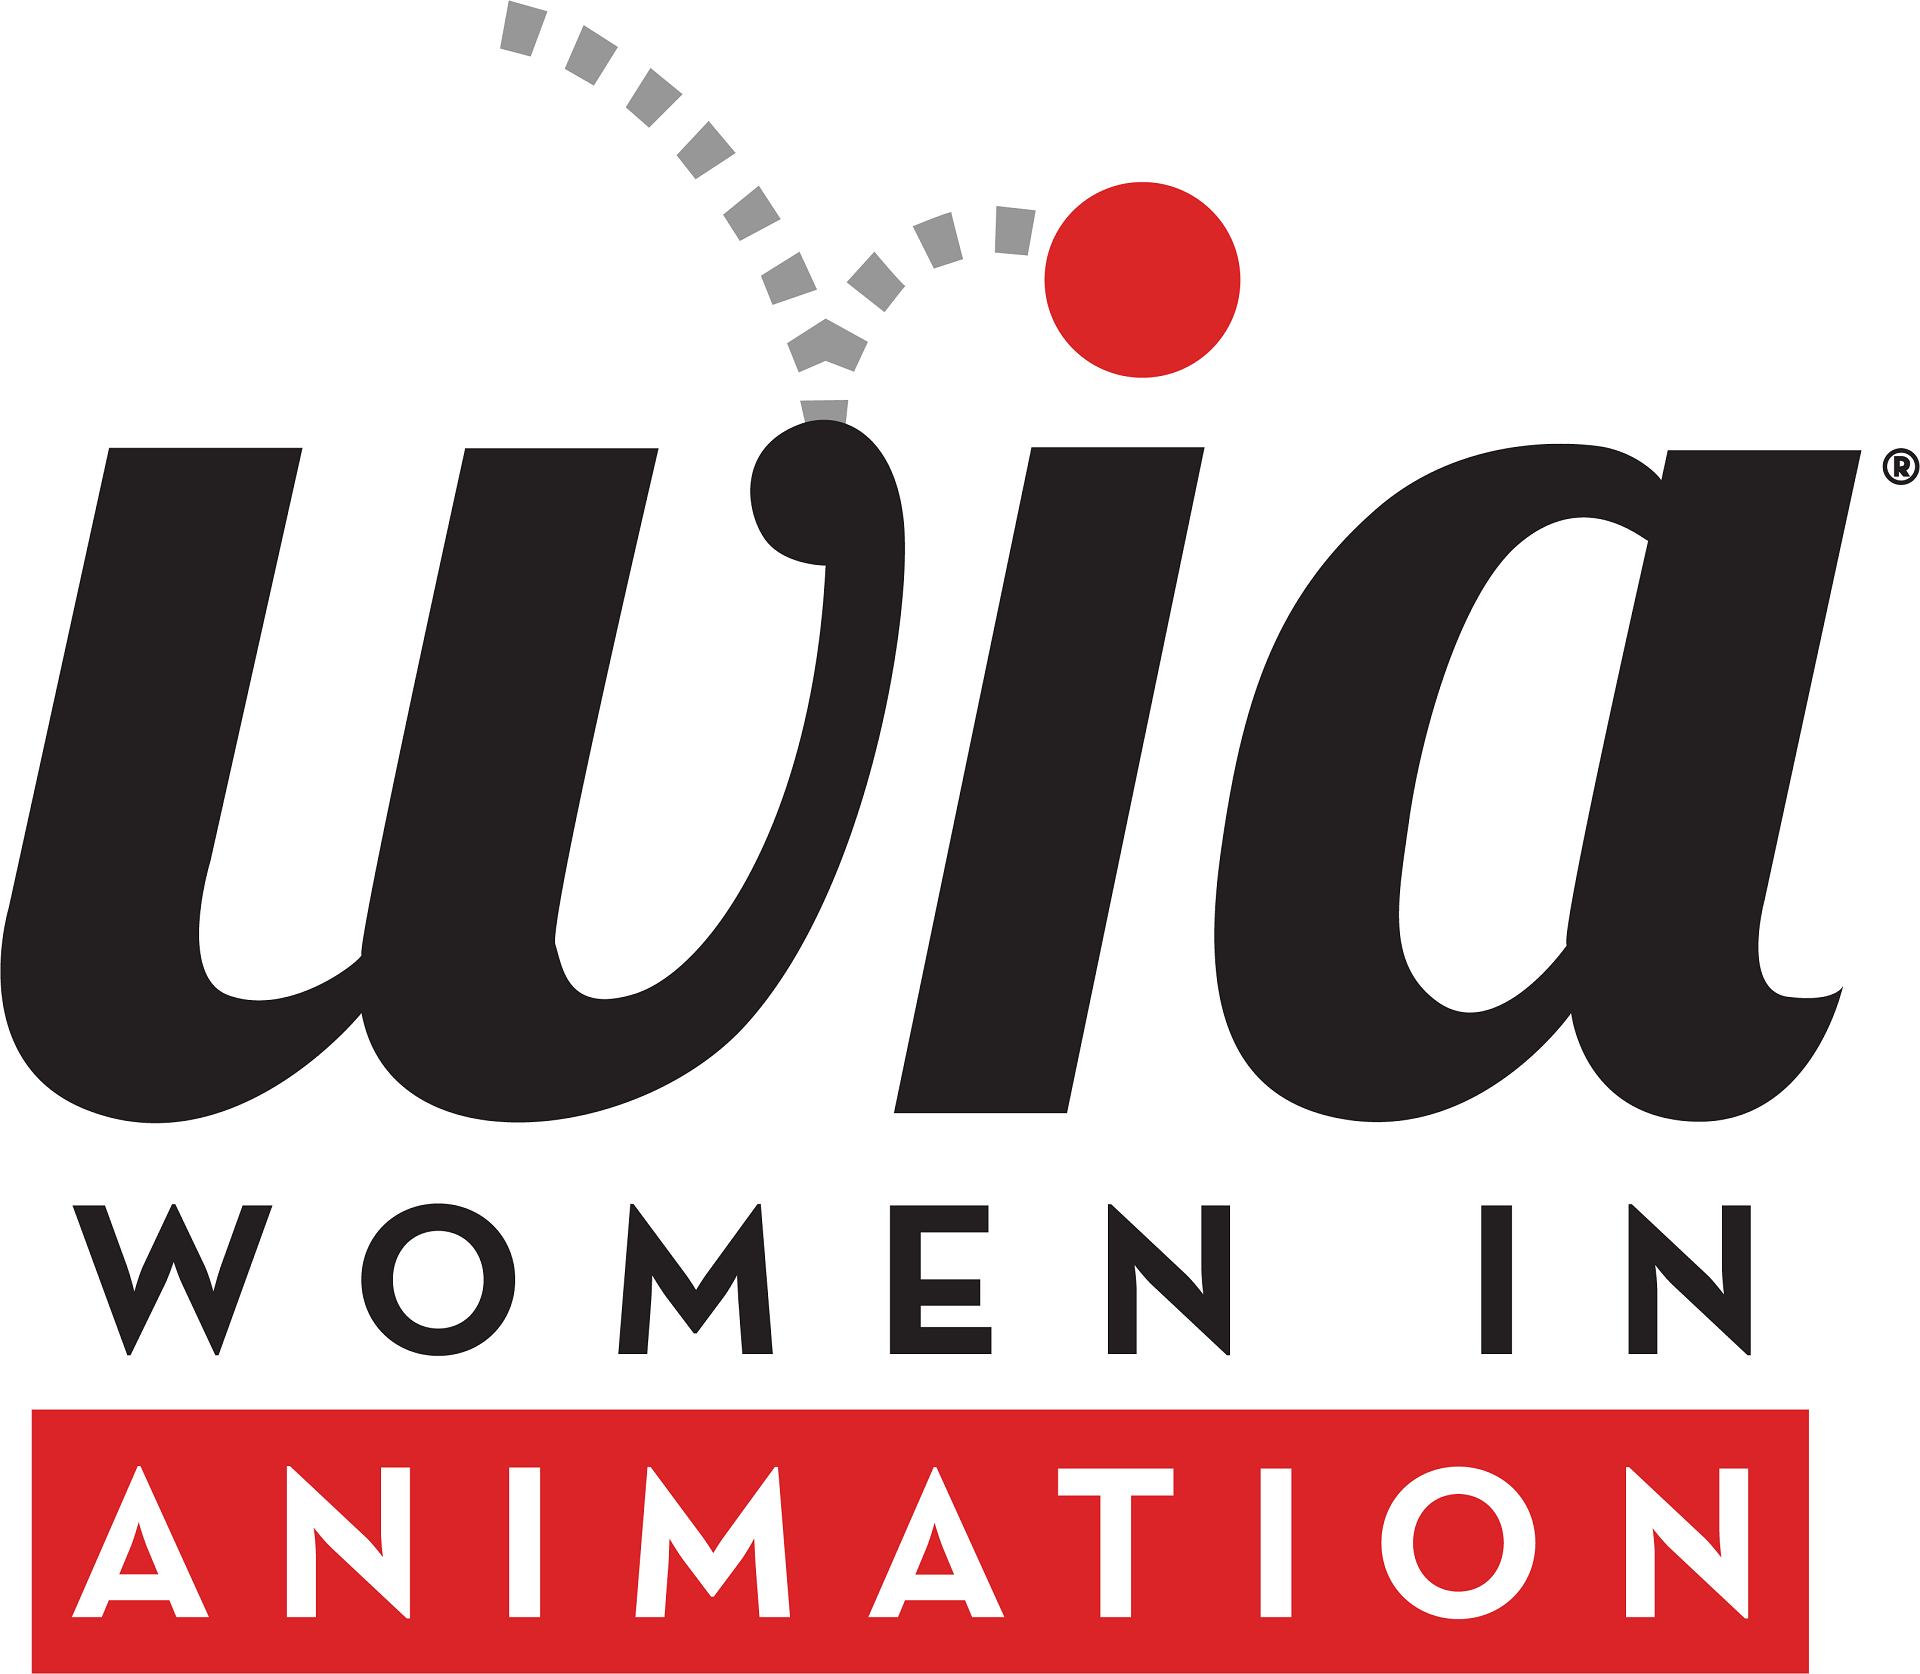 Image of Women in Animation logo.